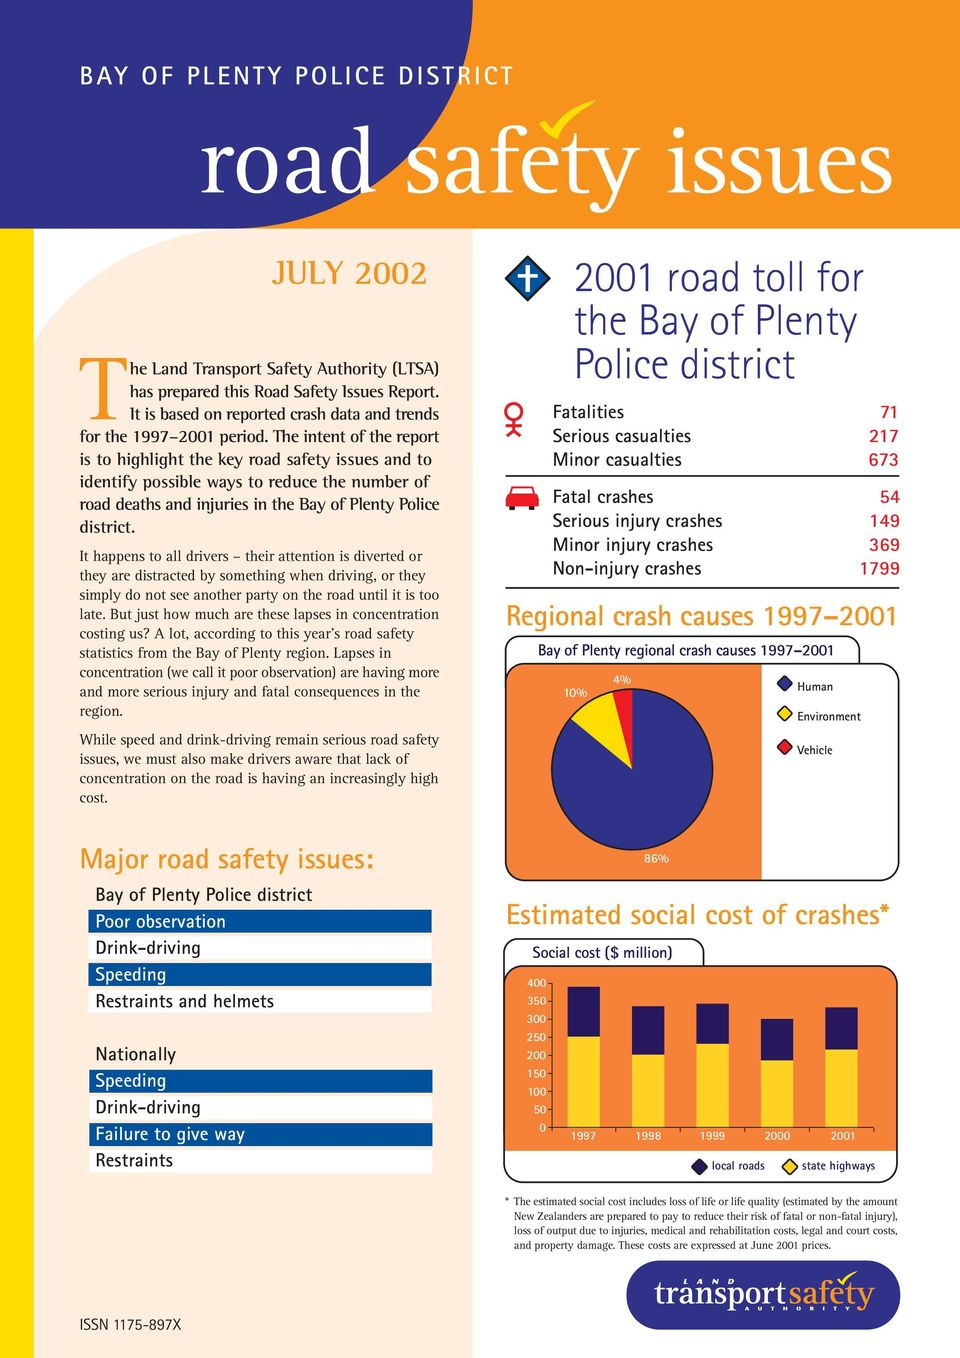 The intent of the report is to highlight the key road safety issues and to identify possible ways to reduce the number of road deaths and injuries in the Bay of Plenty Police district.